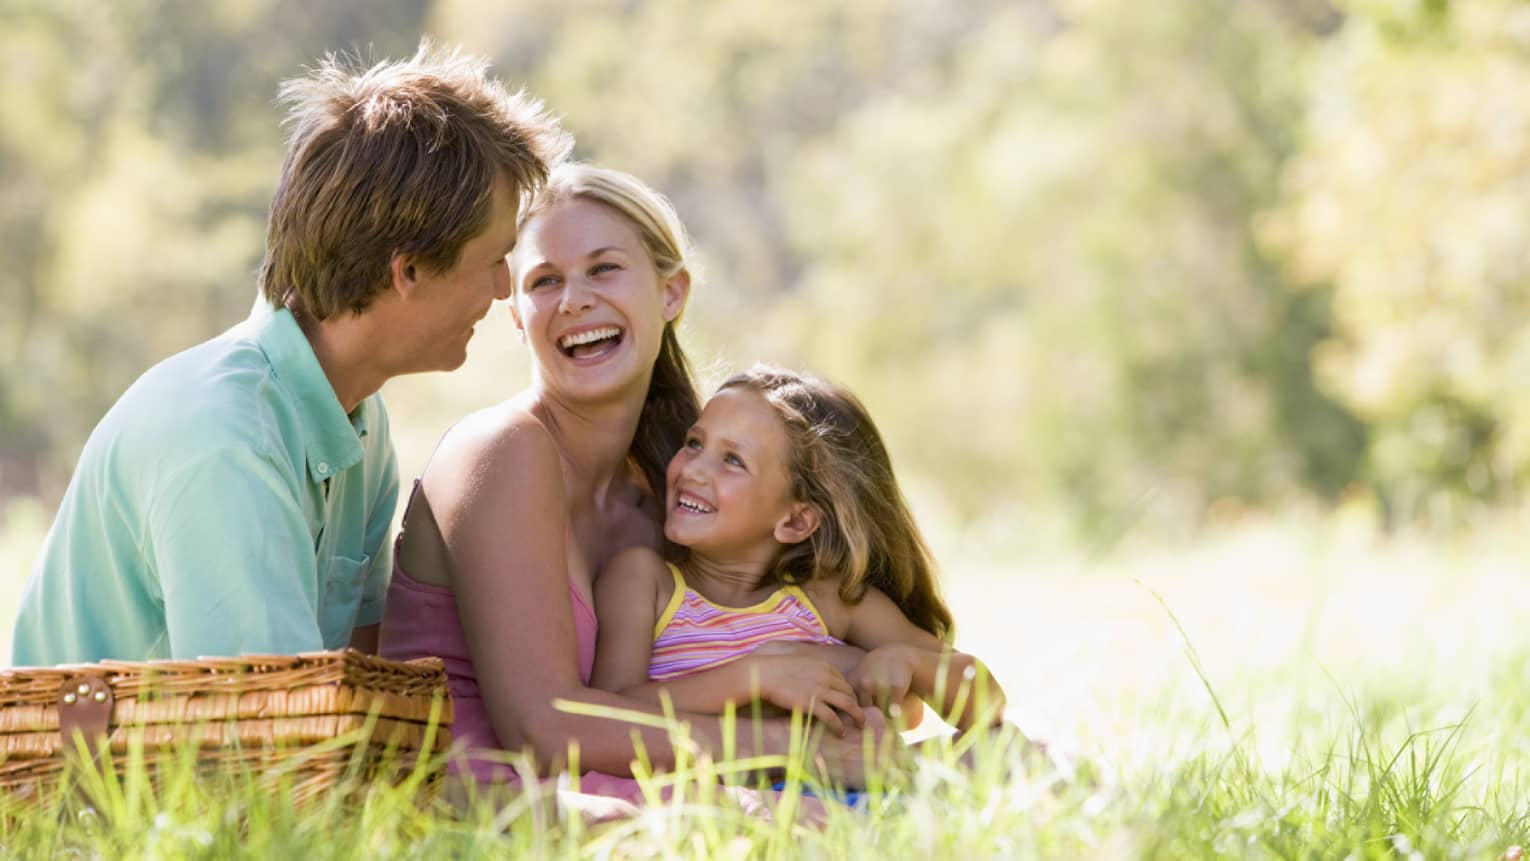 Smiling man, woman and young girl sit in tall grass by picnic basket on sunny day